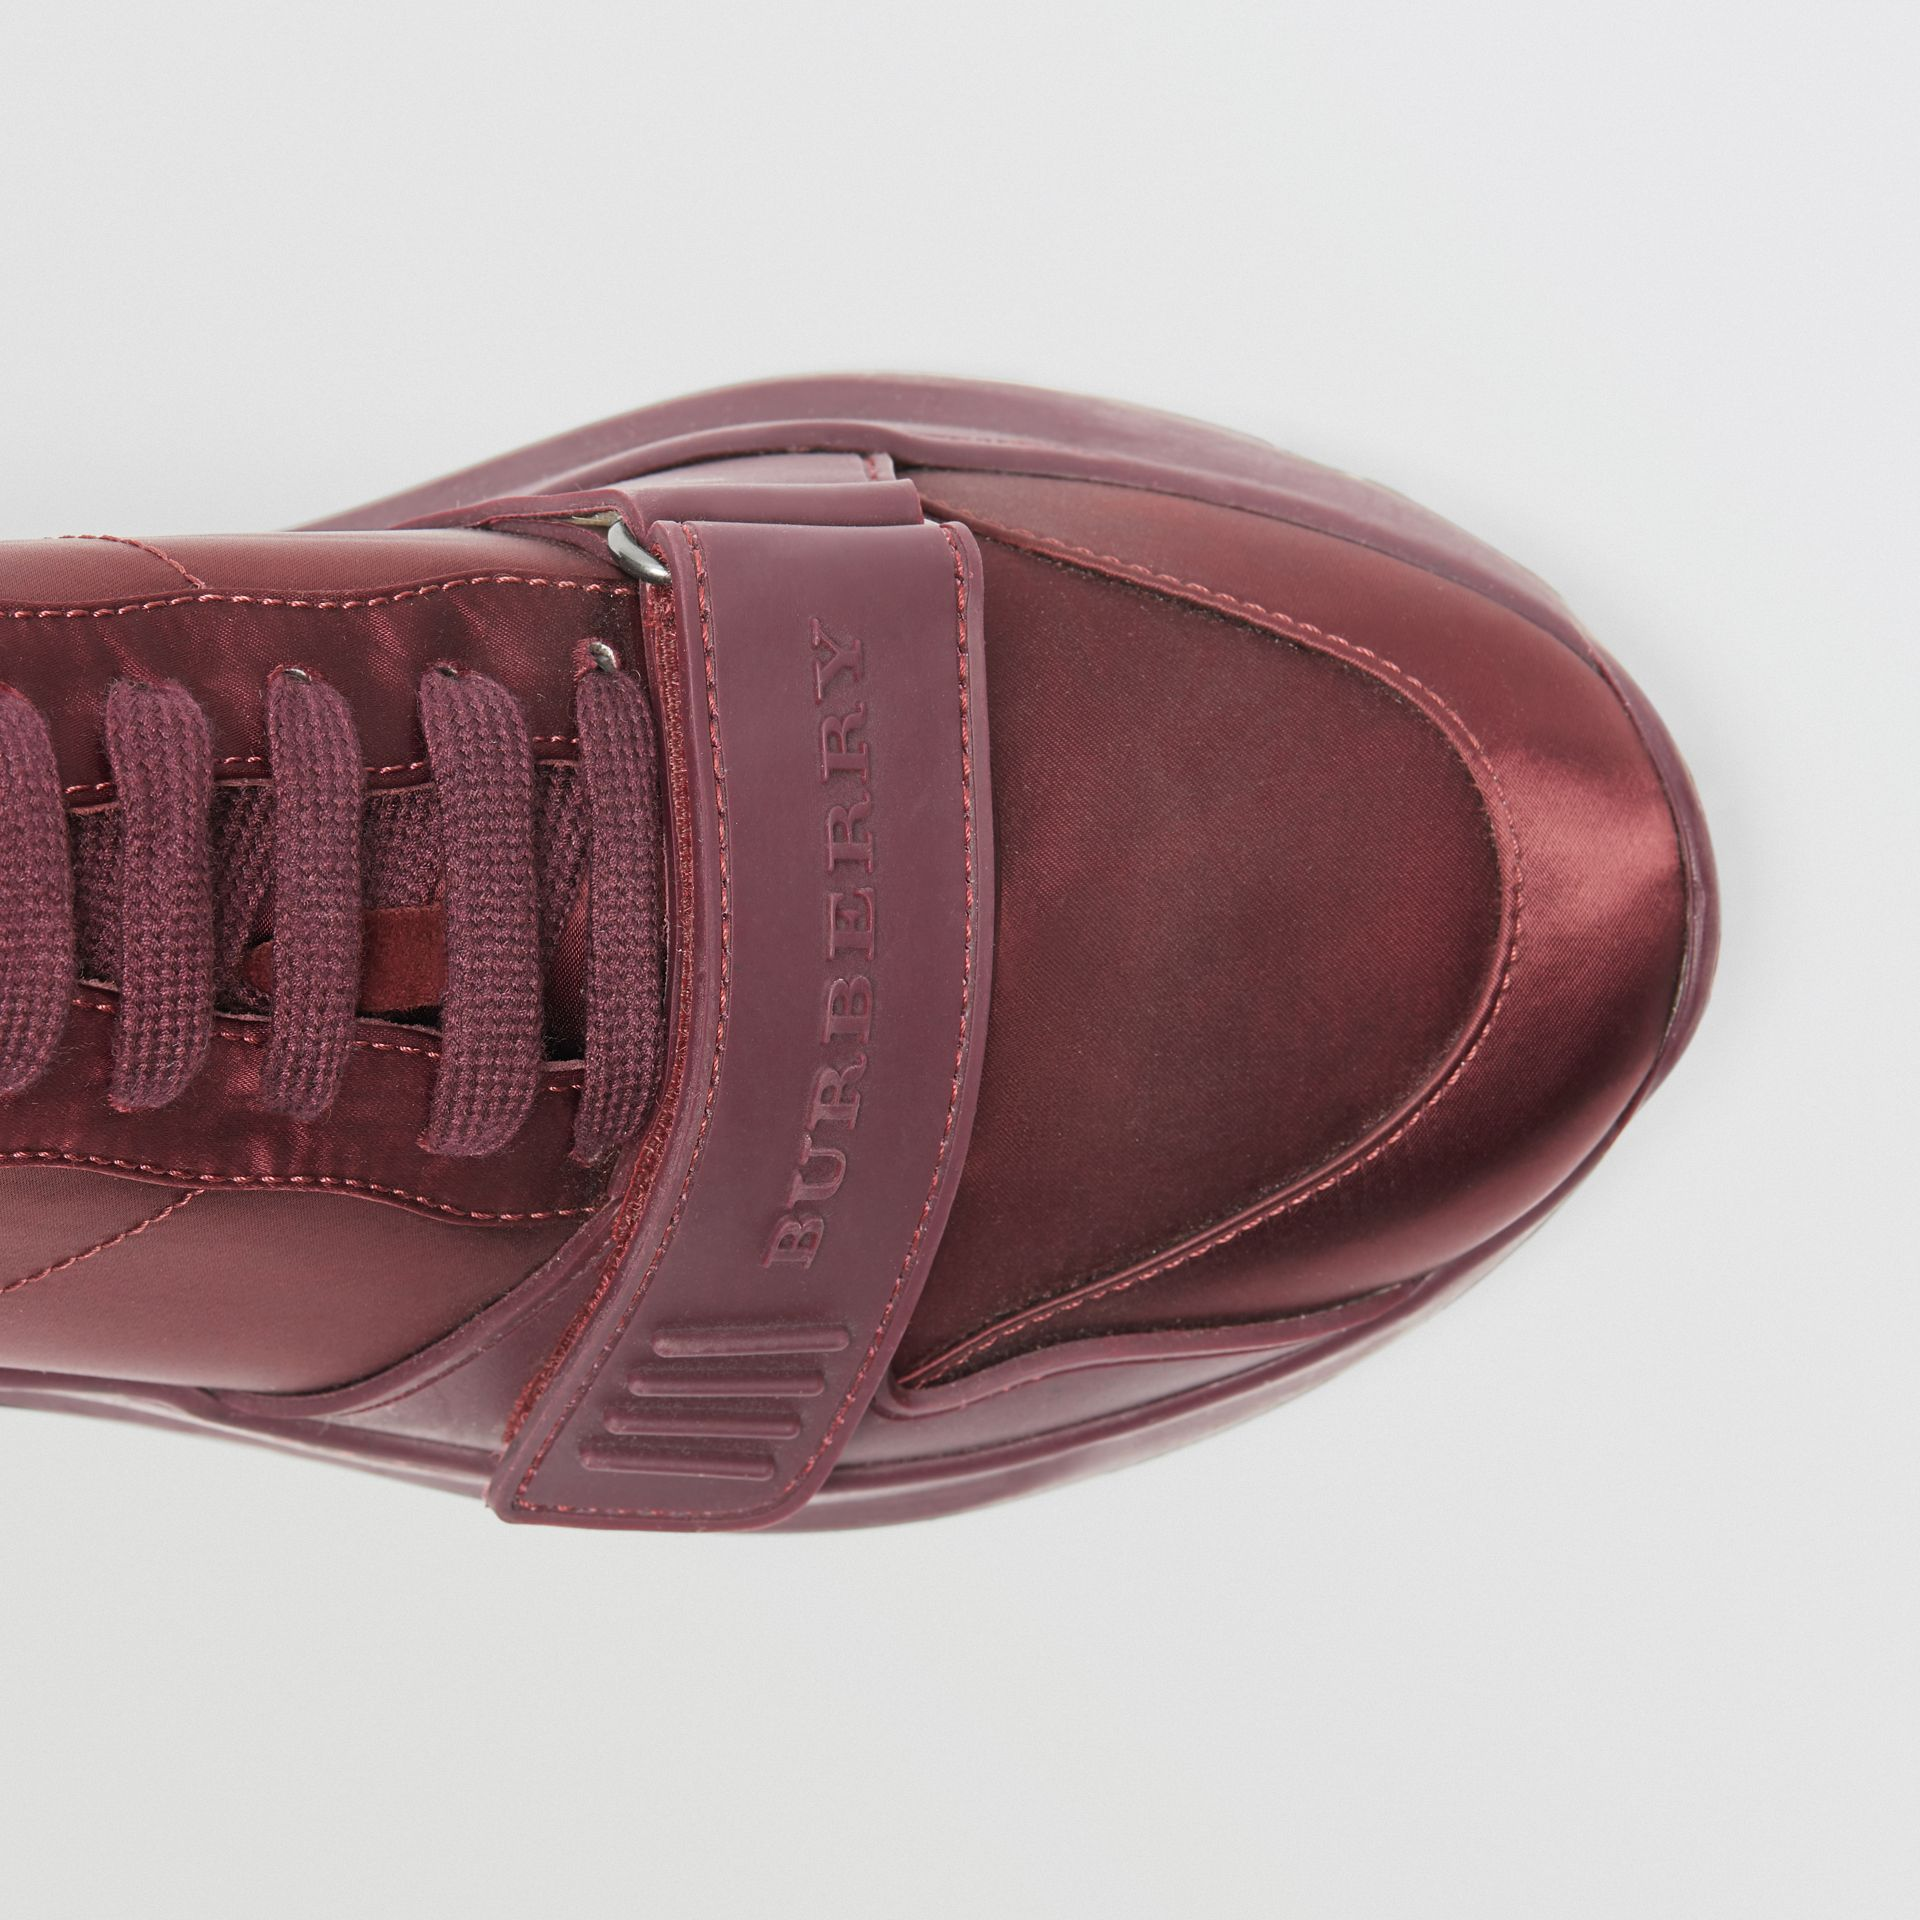 Satin Sneakers in Claret - Women | Burberry - gallery image 1